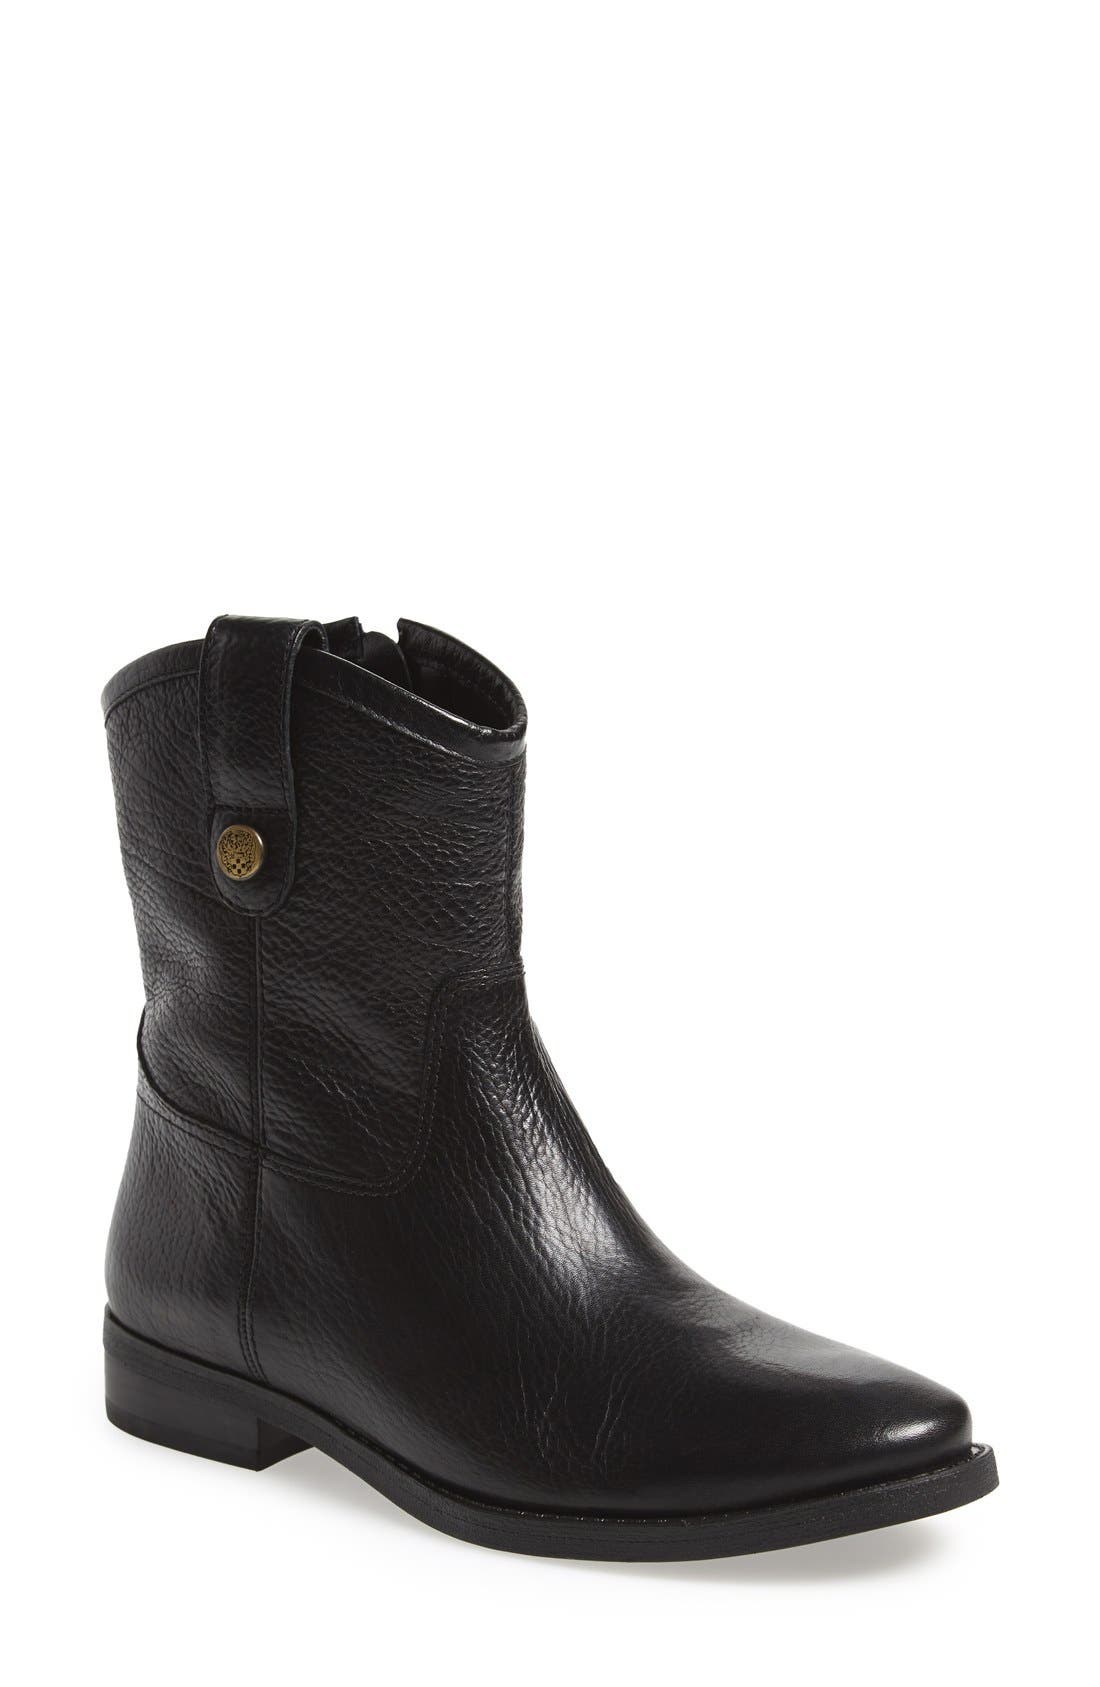 'Payatt' Short Riding Boot,                             Main thumbnail 1, color,                             001